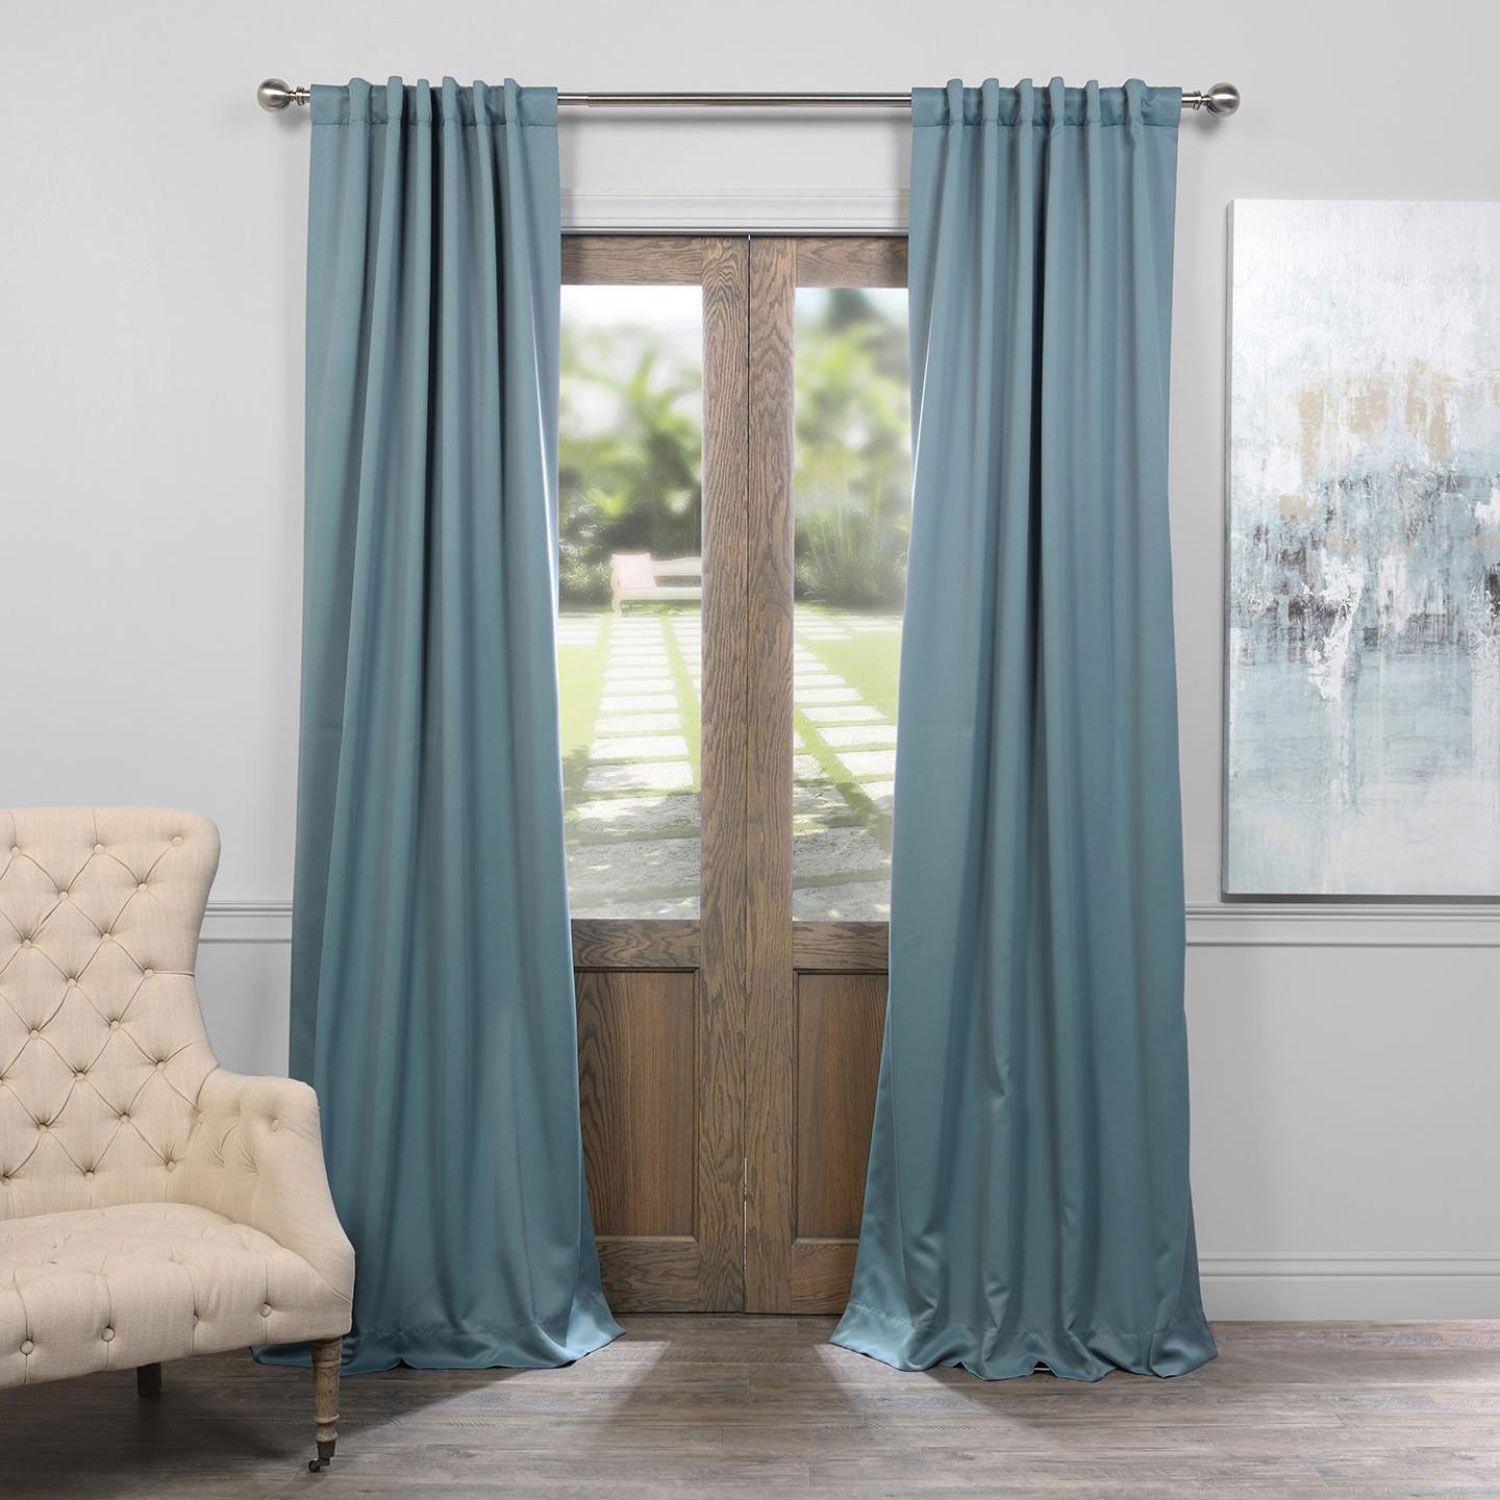 Dragonfly Teal 50 X 120 Inch Blackout Curtain Half Price Drapes Panels